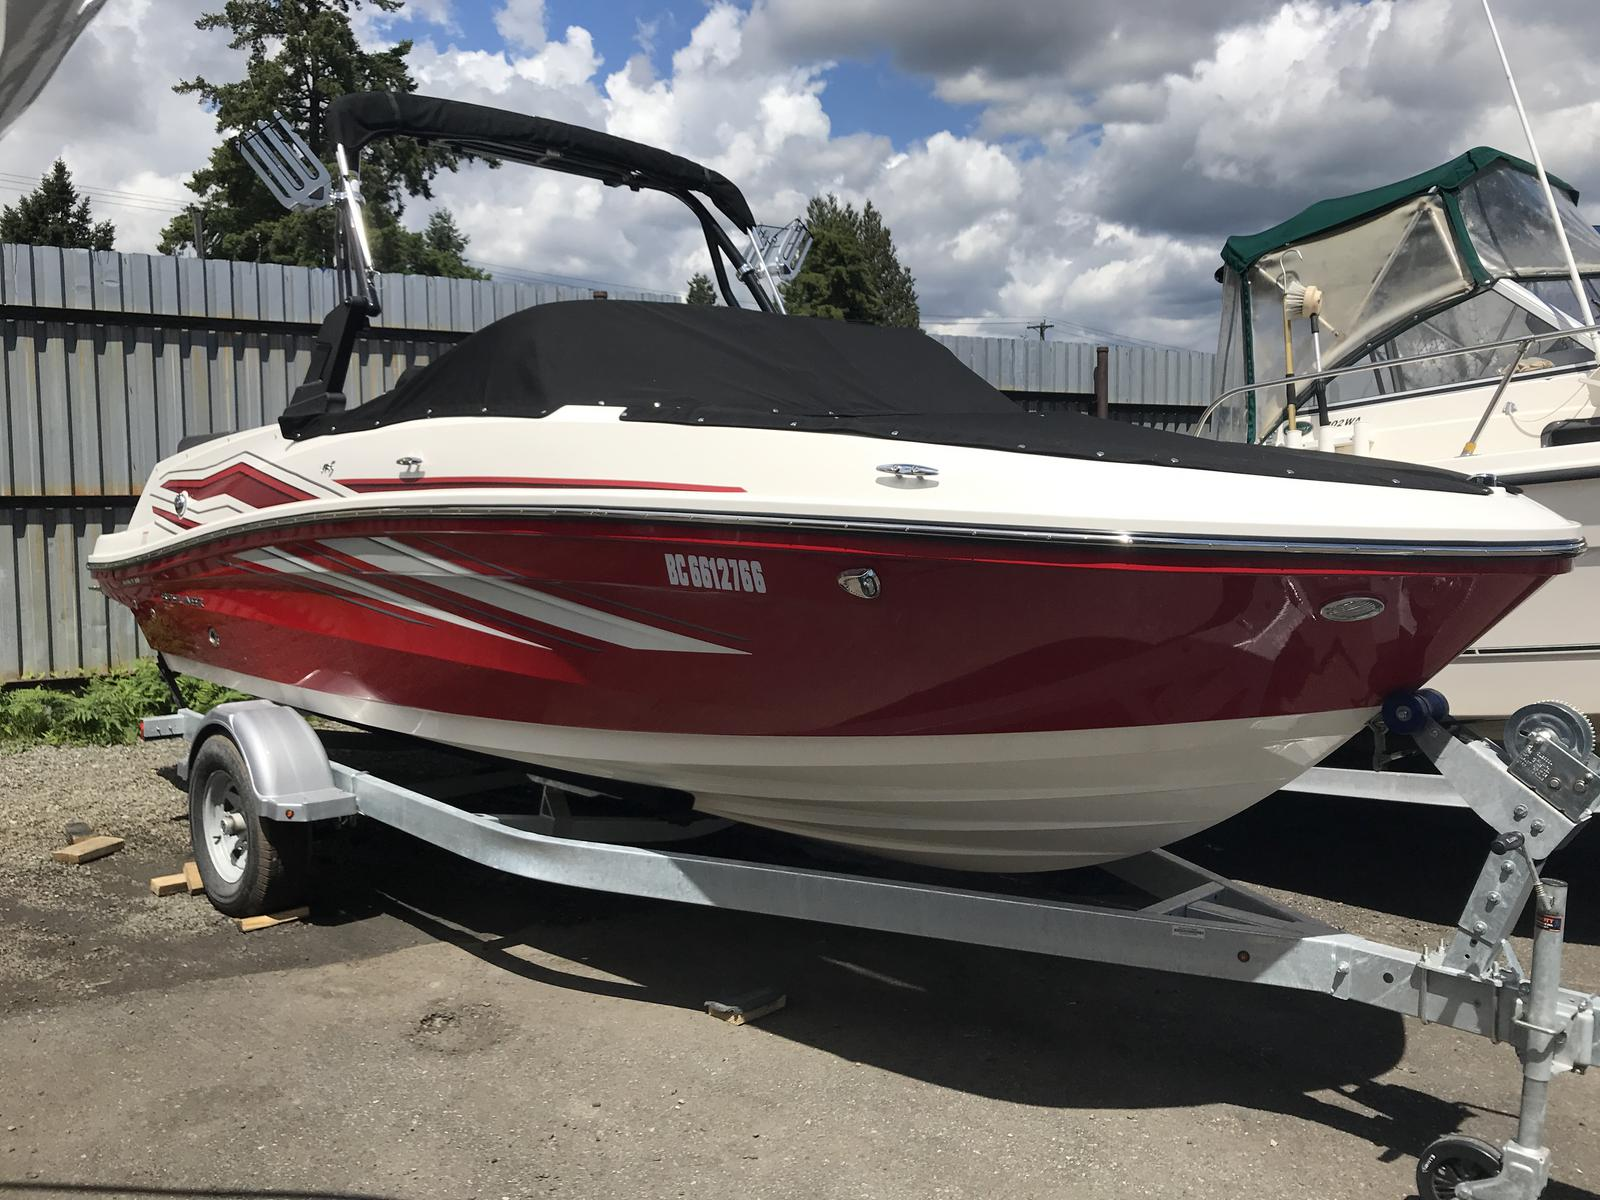 2019 Bayliner boat for sale, model of the boat is VR5 Bowrider & Image # 2 of 22